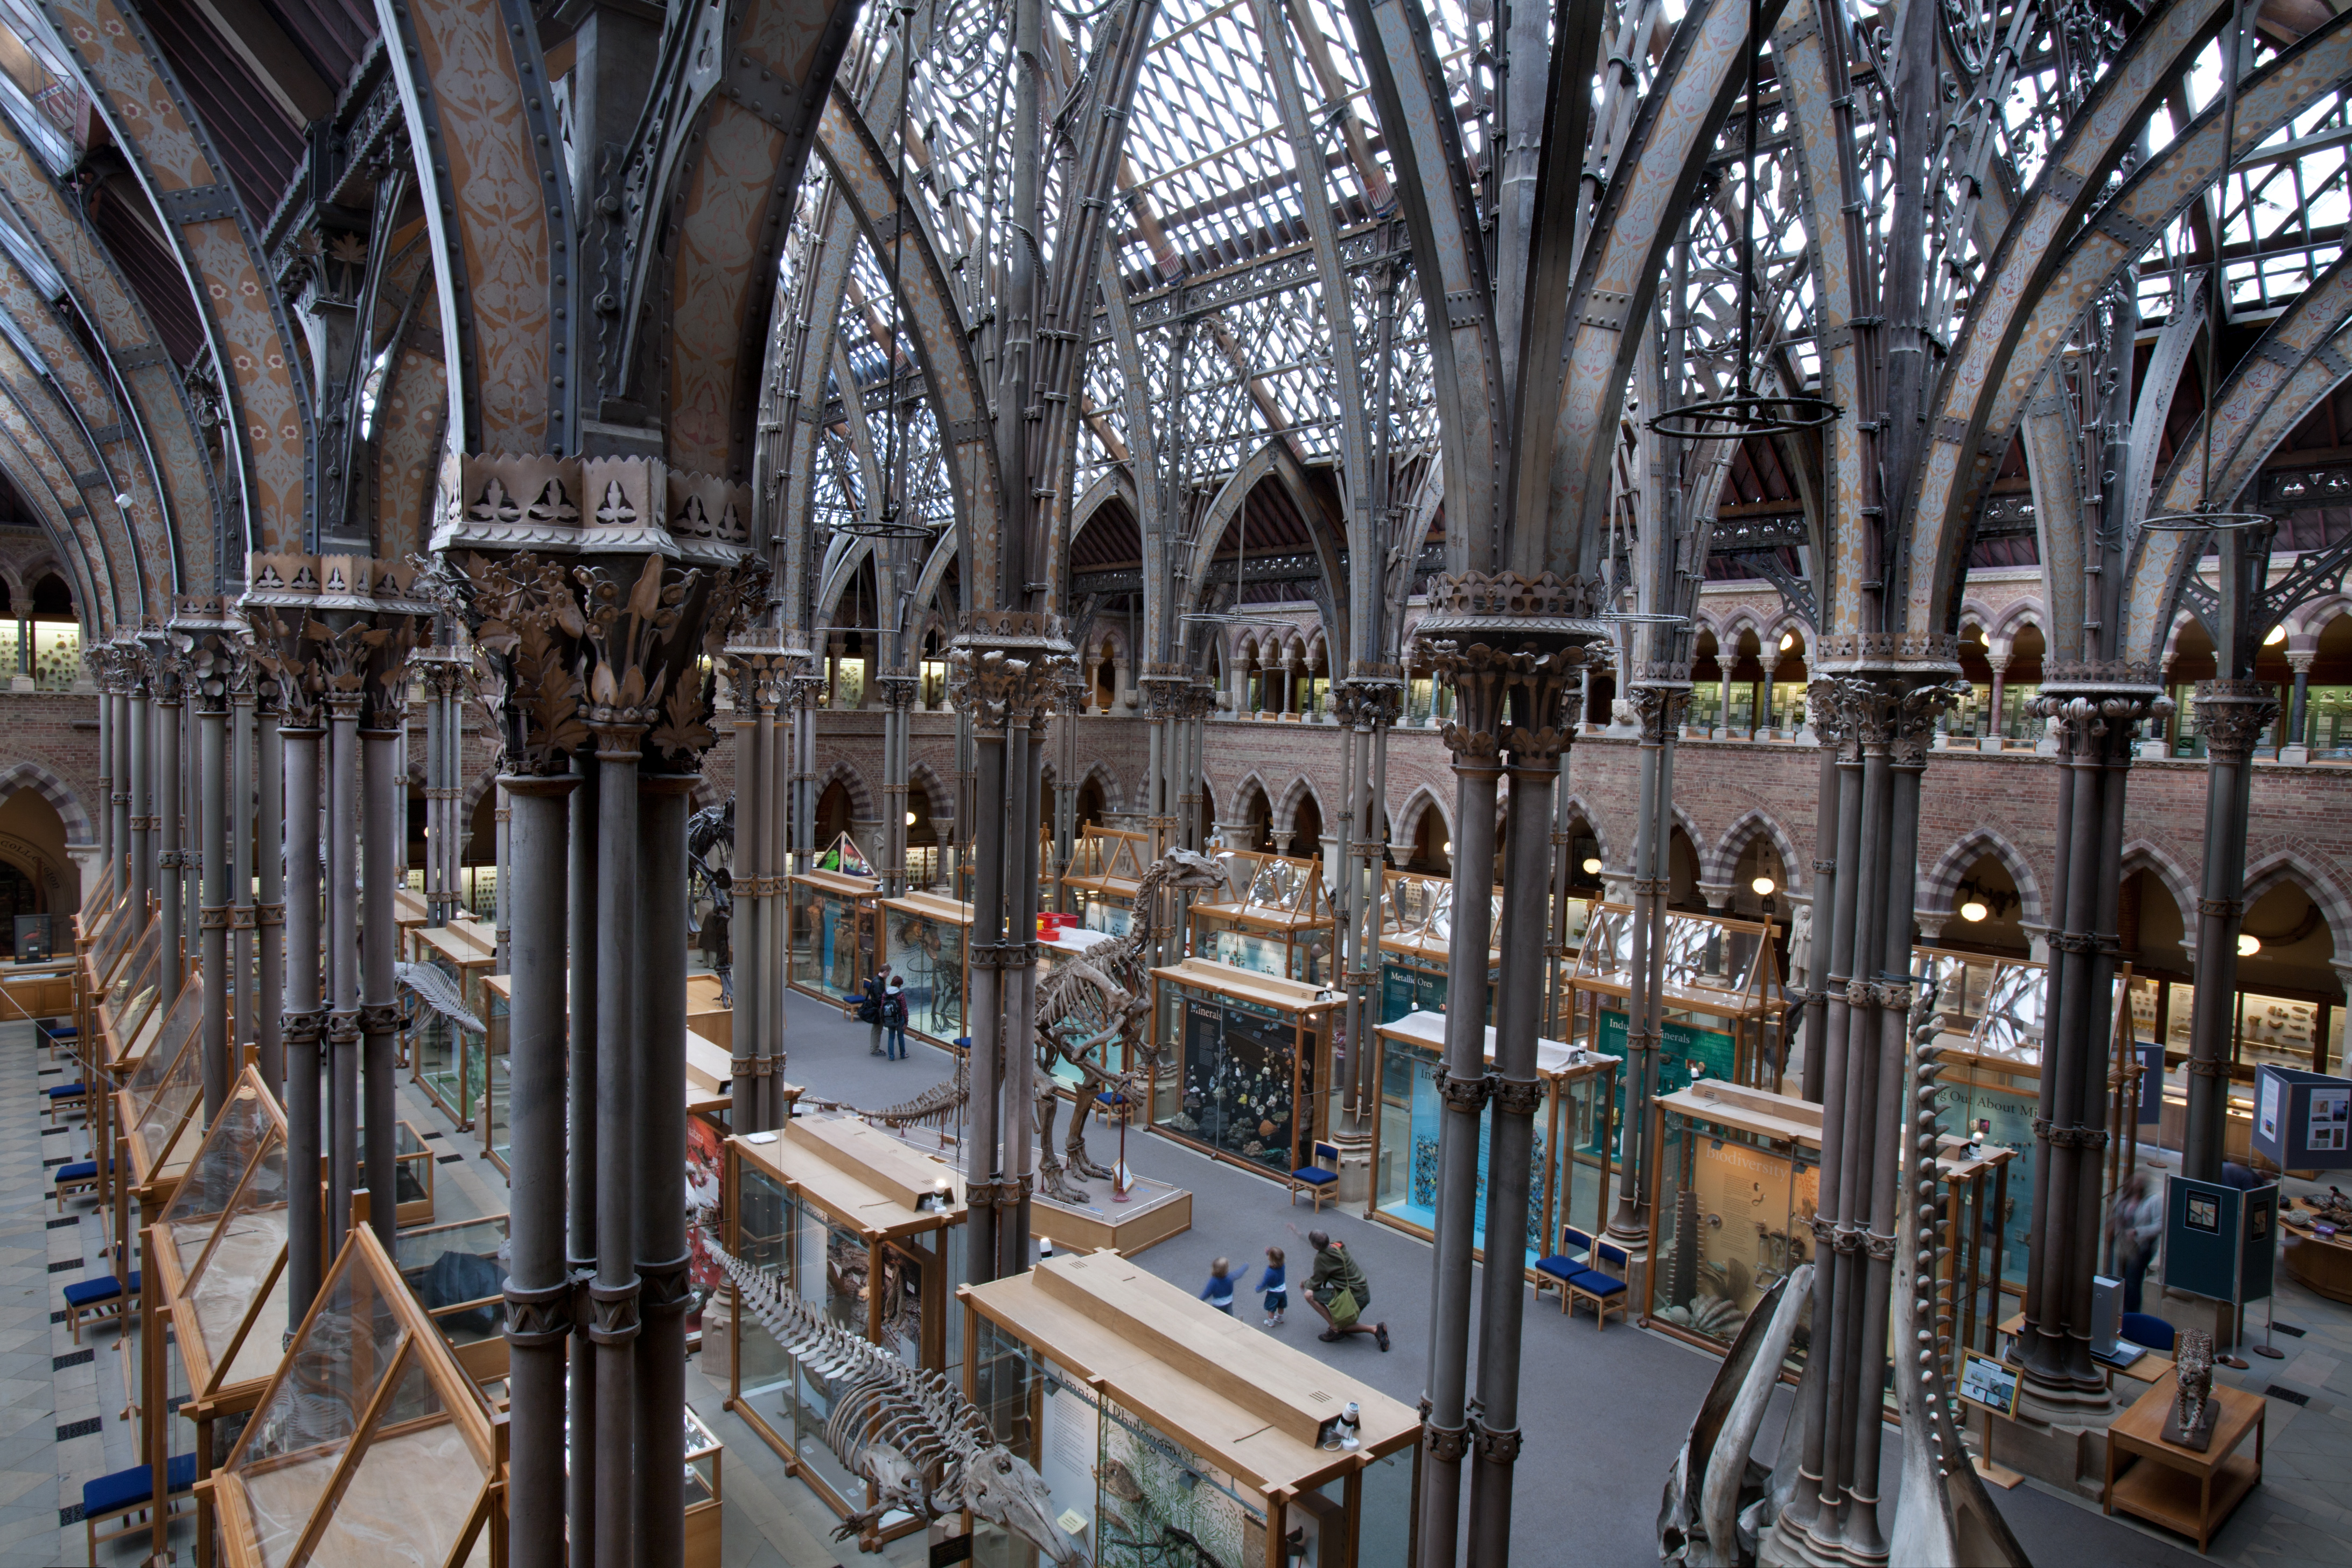 http://upload.wikimedia.org/wikipedia/commons/f/f8/Oxford_-_Oxford_University_Museum_of_Natural_History_-_0227.jpg